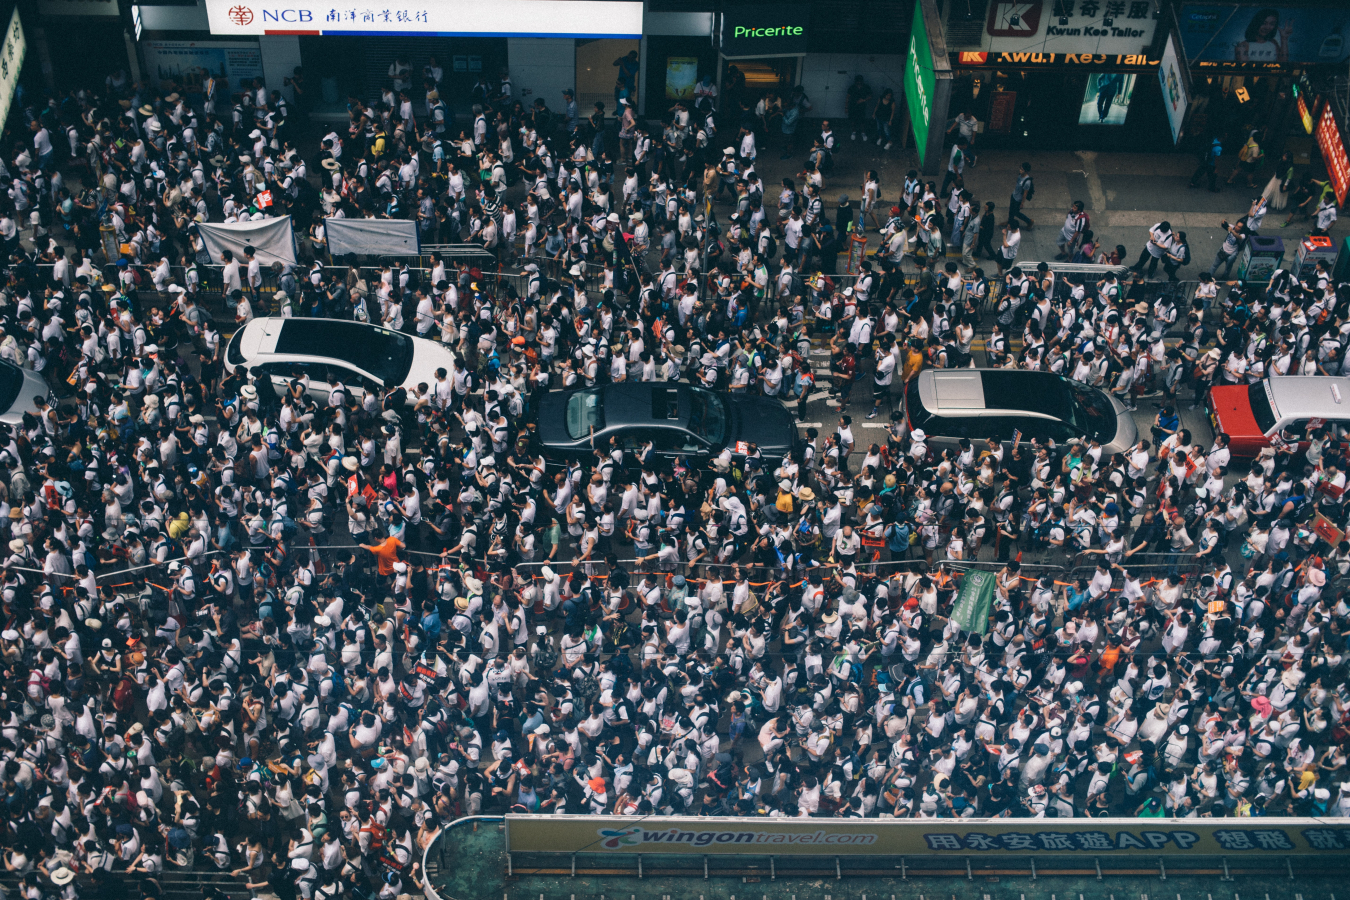 Causeway Bay, Hong Kong - More than 1 million marched in protest against controversial extradition bill, 09/06/2019